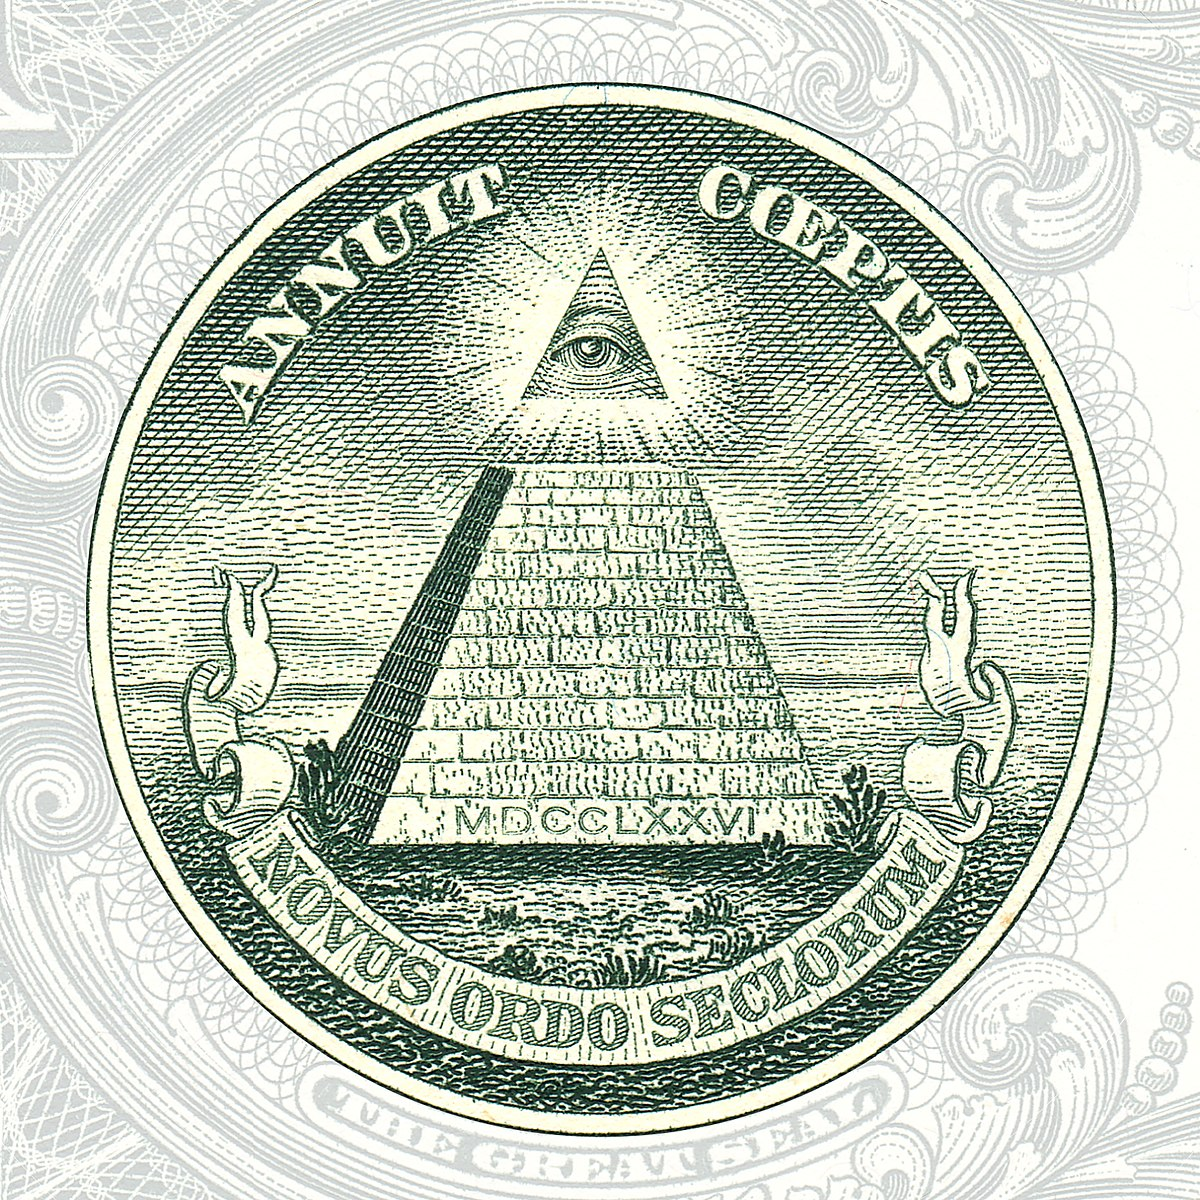 Eye of Providence - Wikipedia